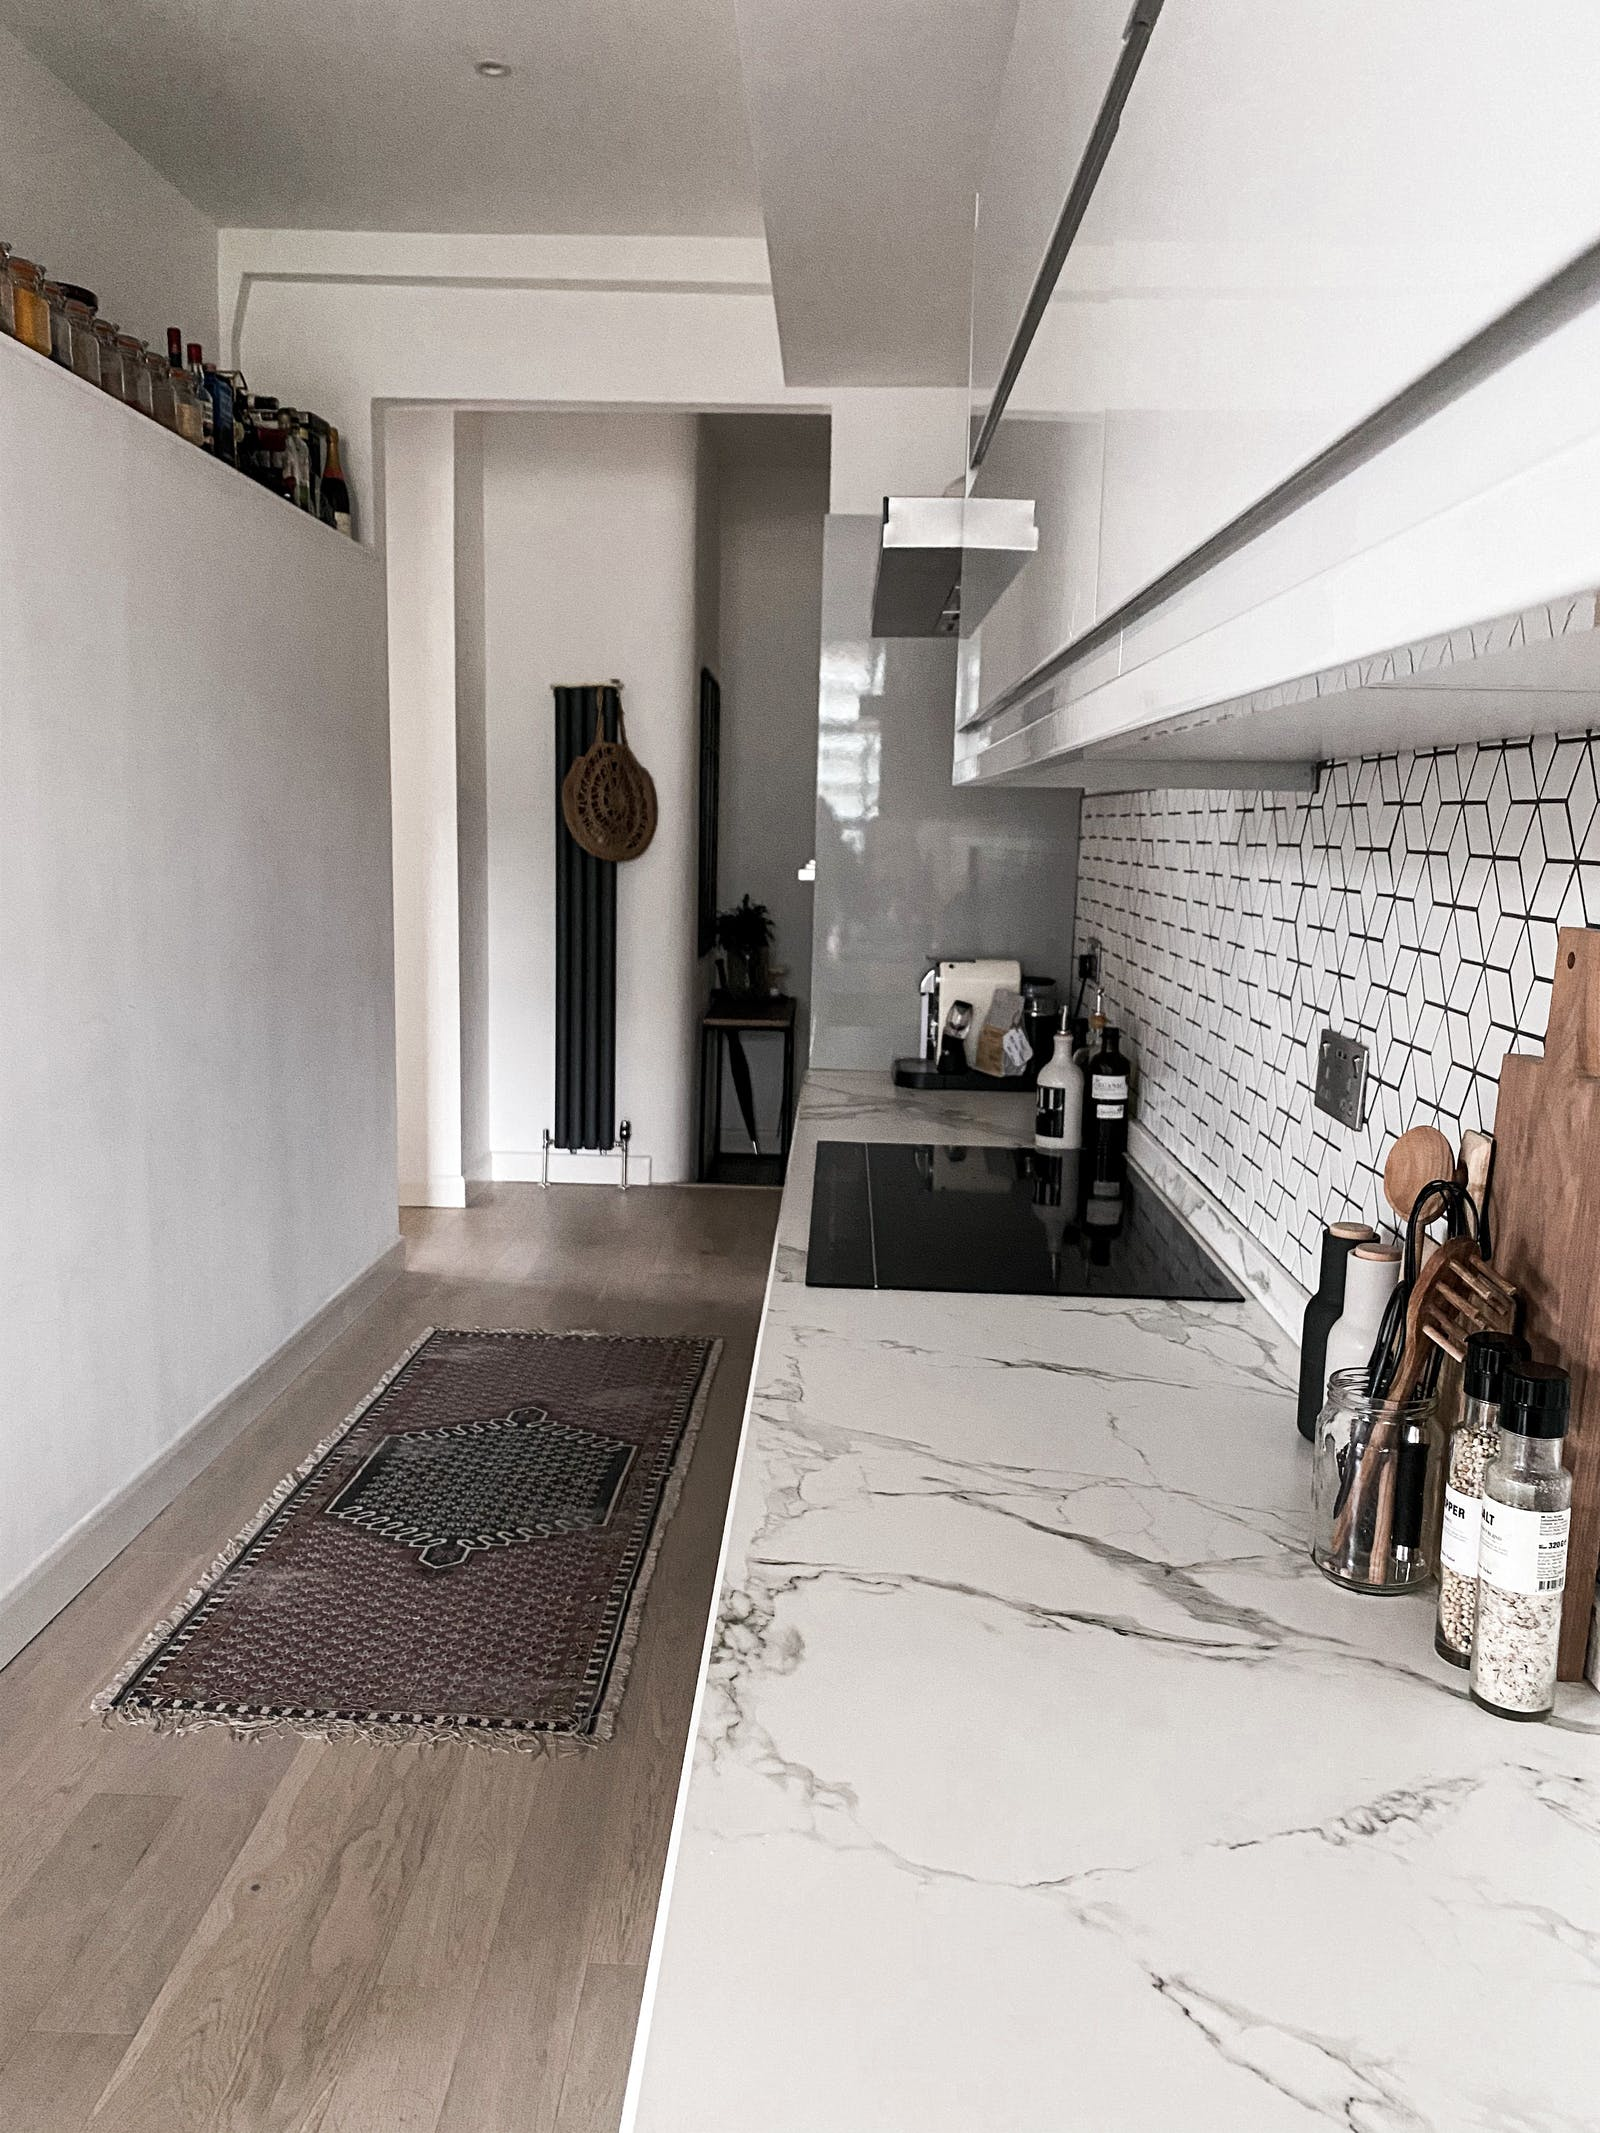 Kitchen area with a marble top and geometric tiles